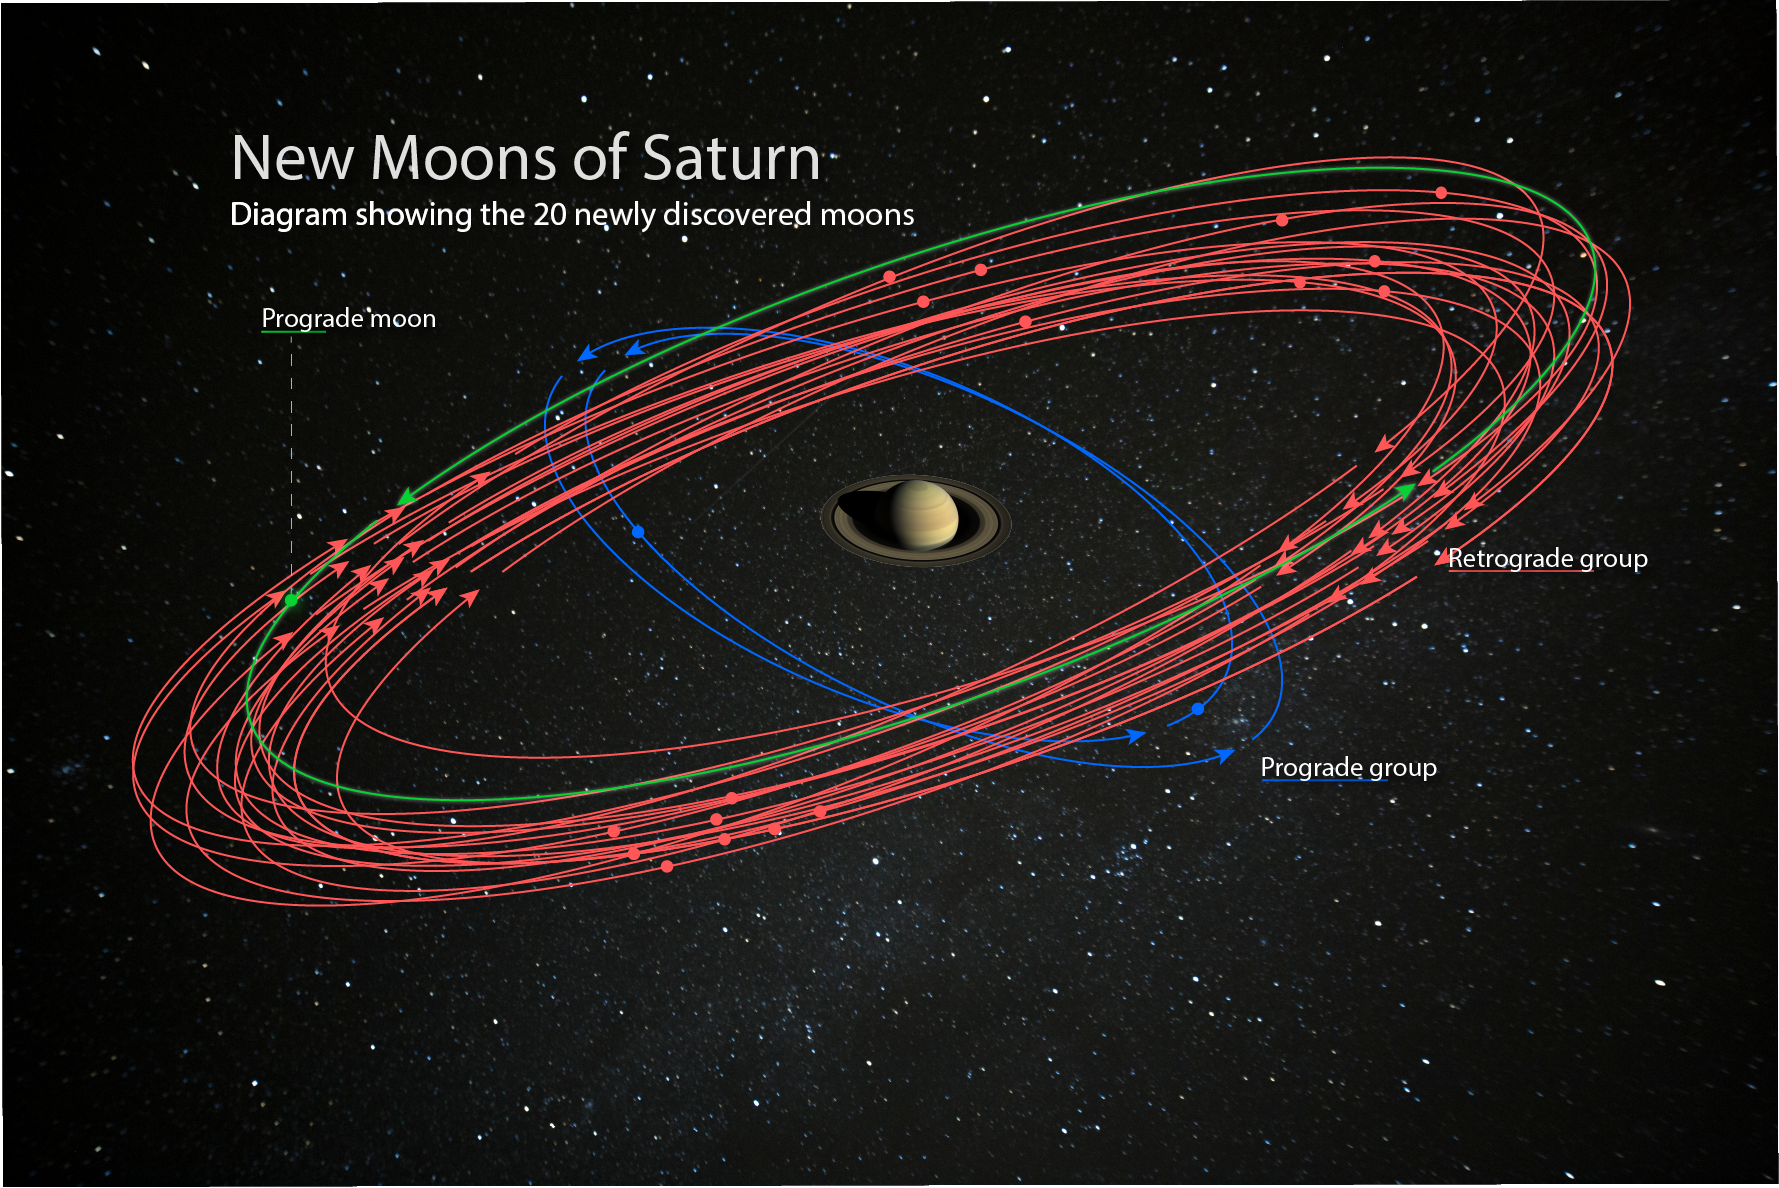 Saturn Surpasses Jupiter After Discovery of 20 New Moons Figure2